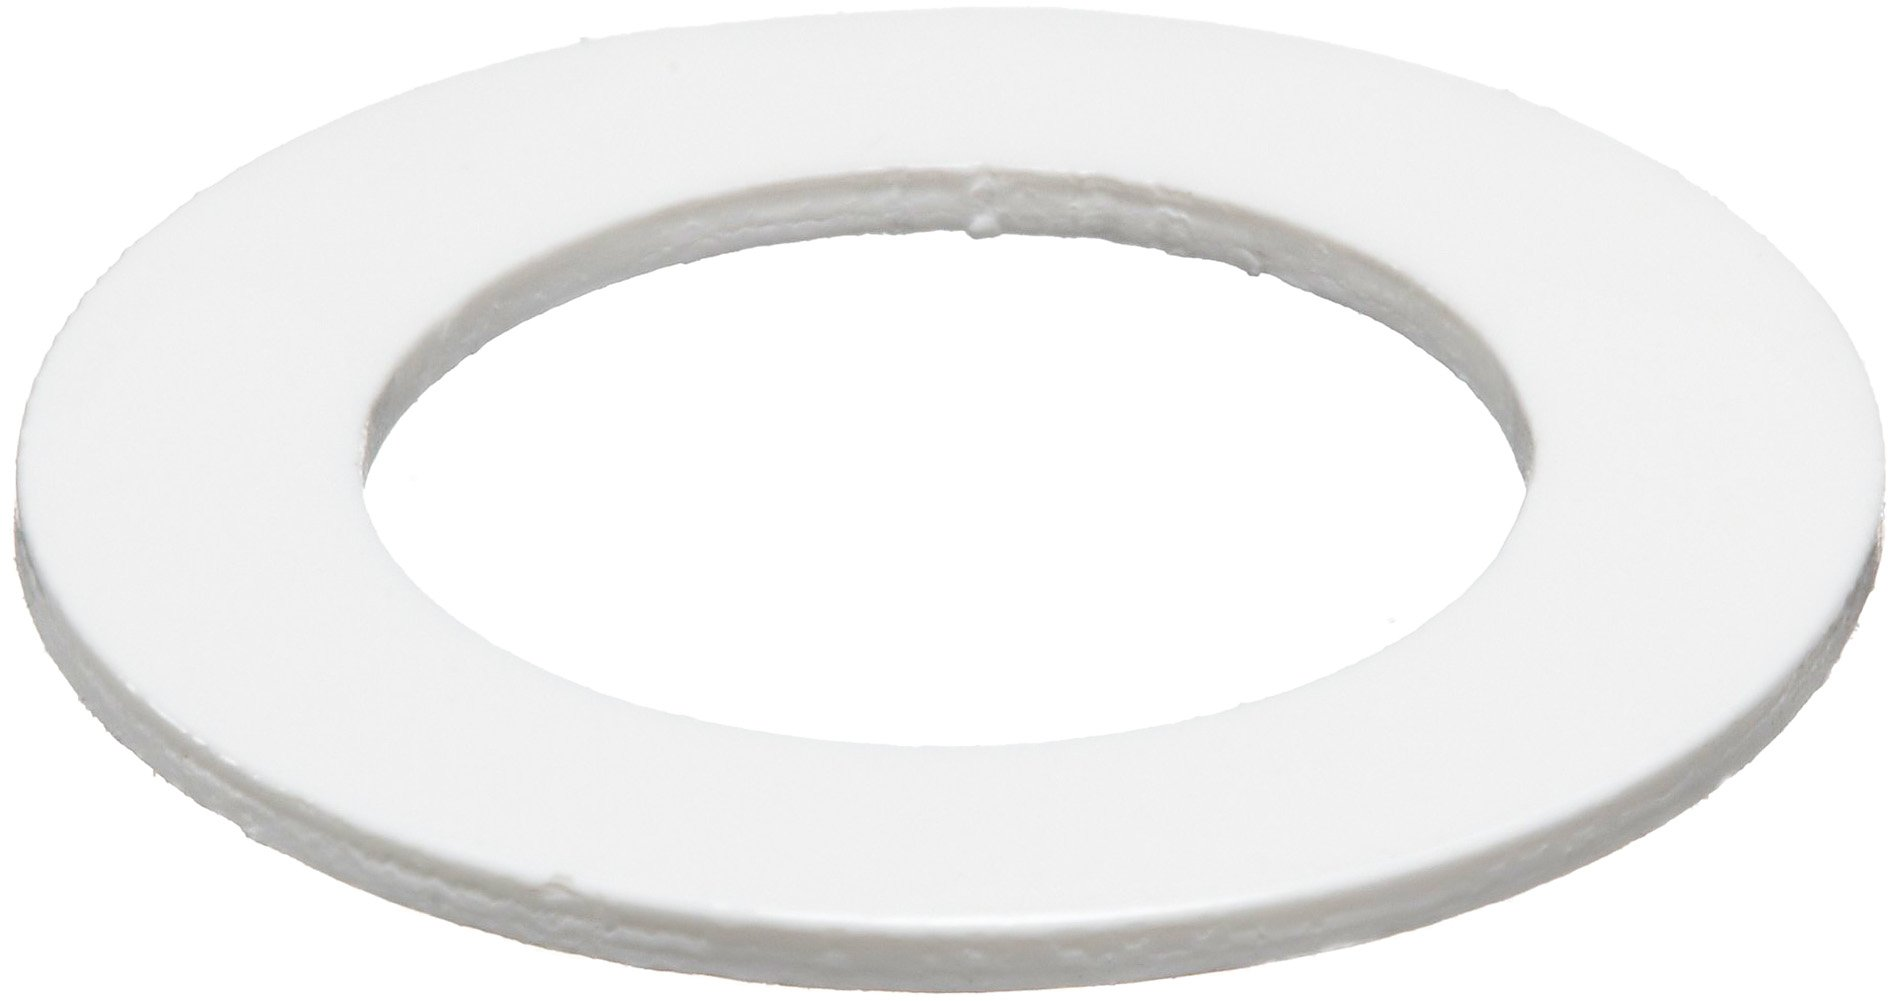 PVC (Polyvinyl Chloride) Round Shim, White, 0.025'' Thickness, 5/8'' ID, 1'' OD (Pack of 10) by Small Parts